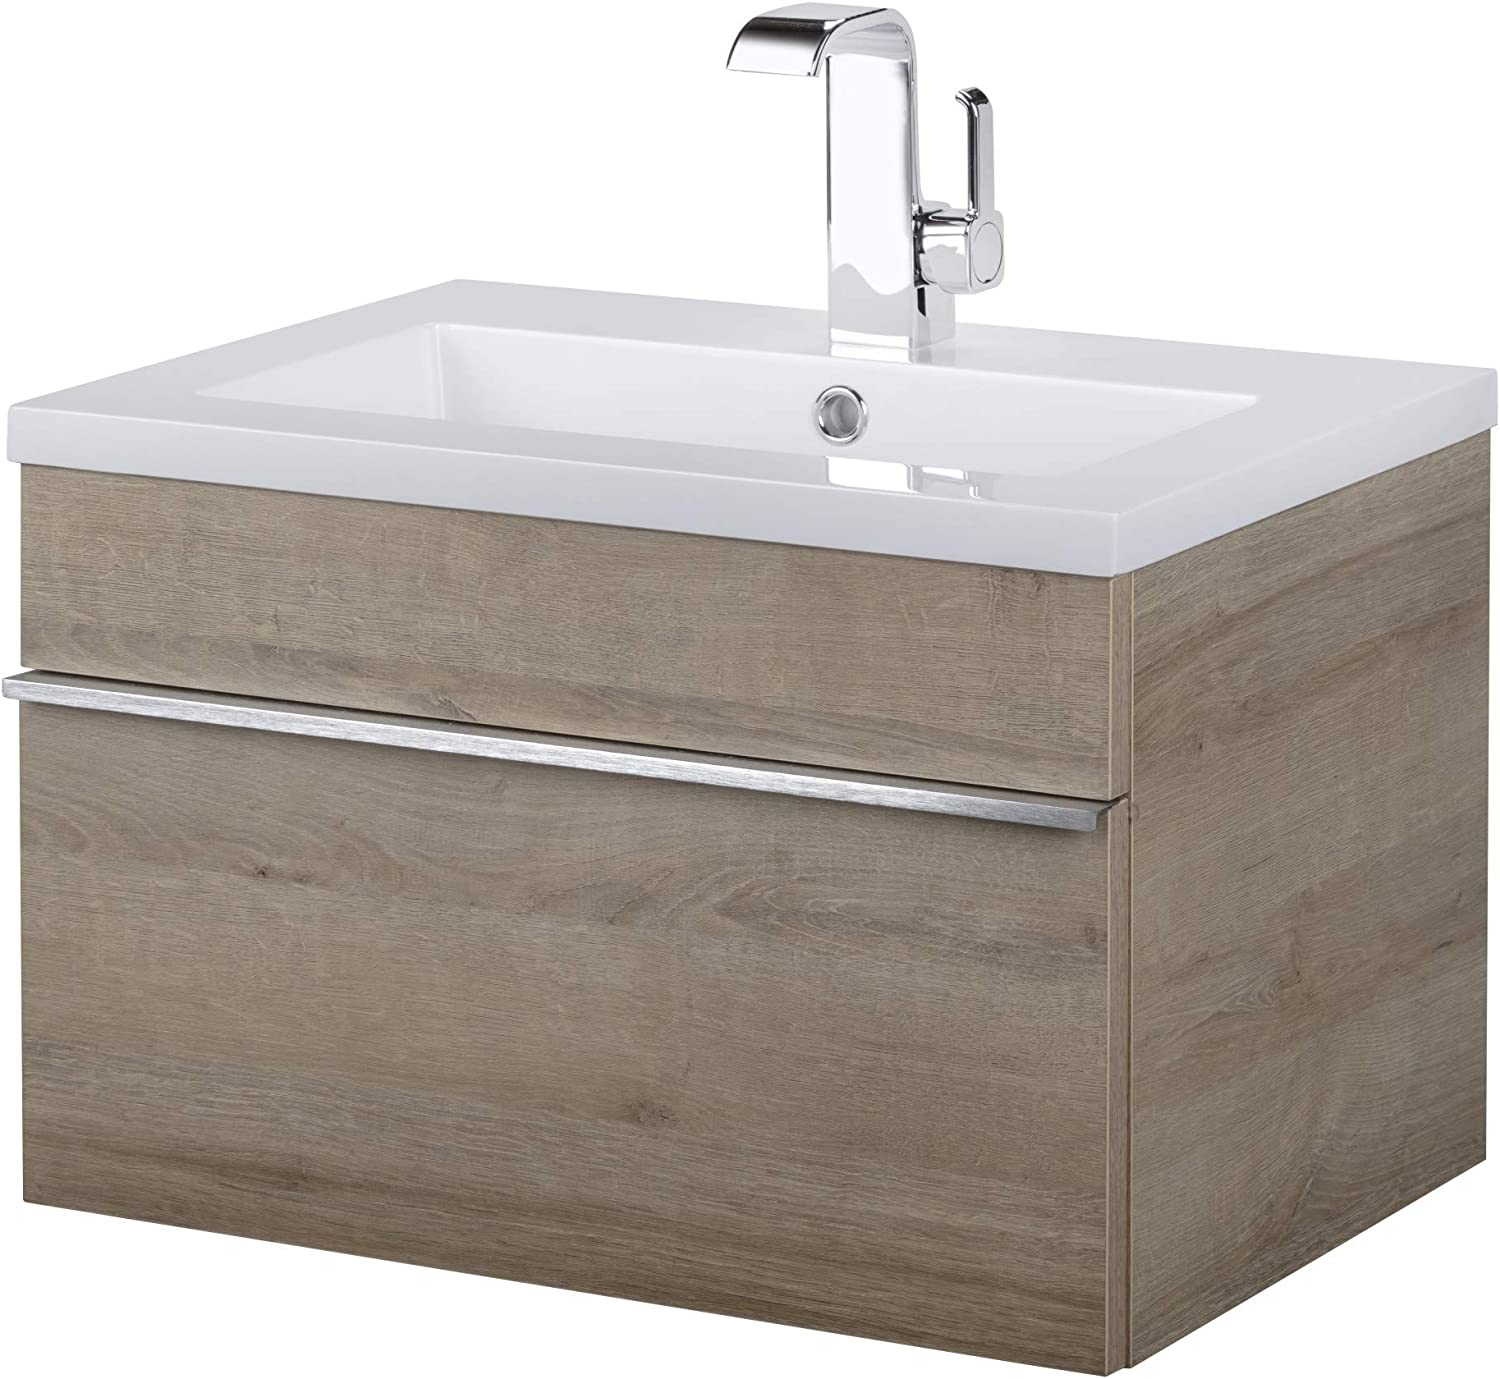 Amazon Com Cutler Kitchen And Bath Fv Tr Organic24 Trough 24 Wall Mounted Single Vanity Set With Acrylic Vanity Top Furniture Decor